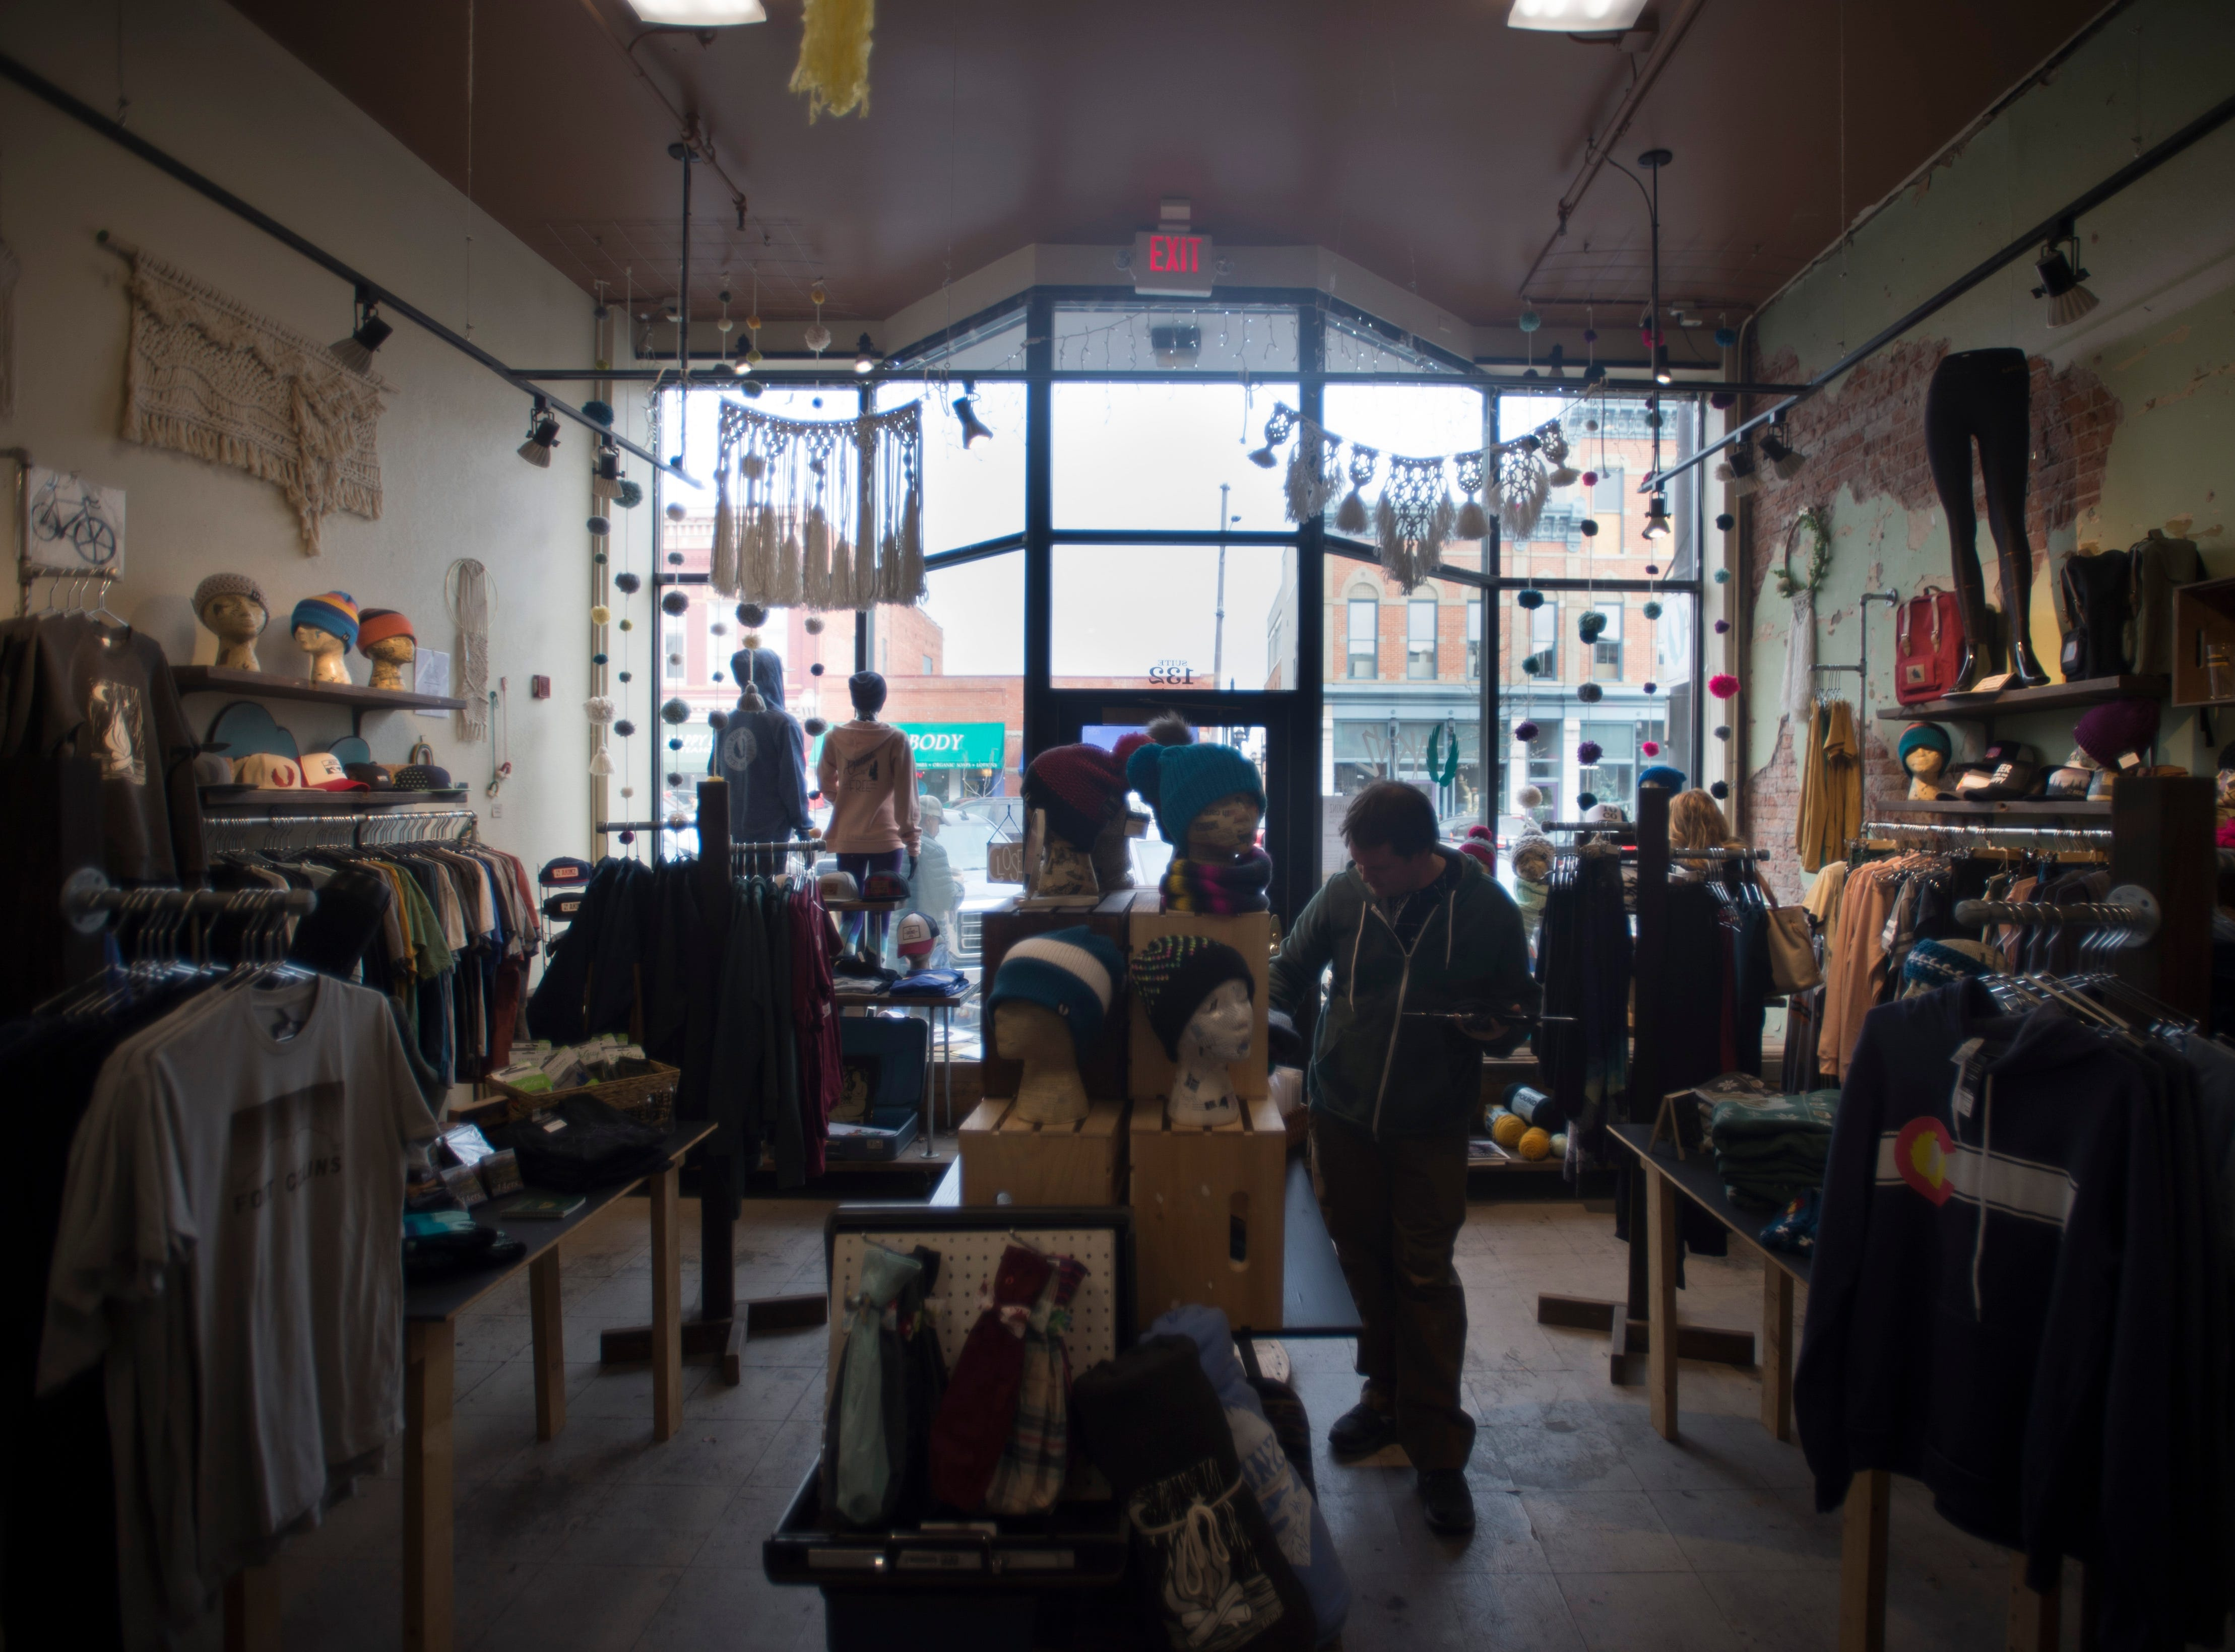 Last-minute holiday shoppers wander Akinz in Old Town on Monday, December 24, 2018.